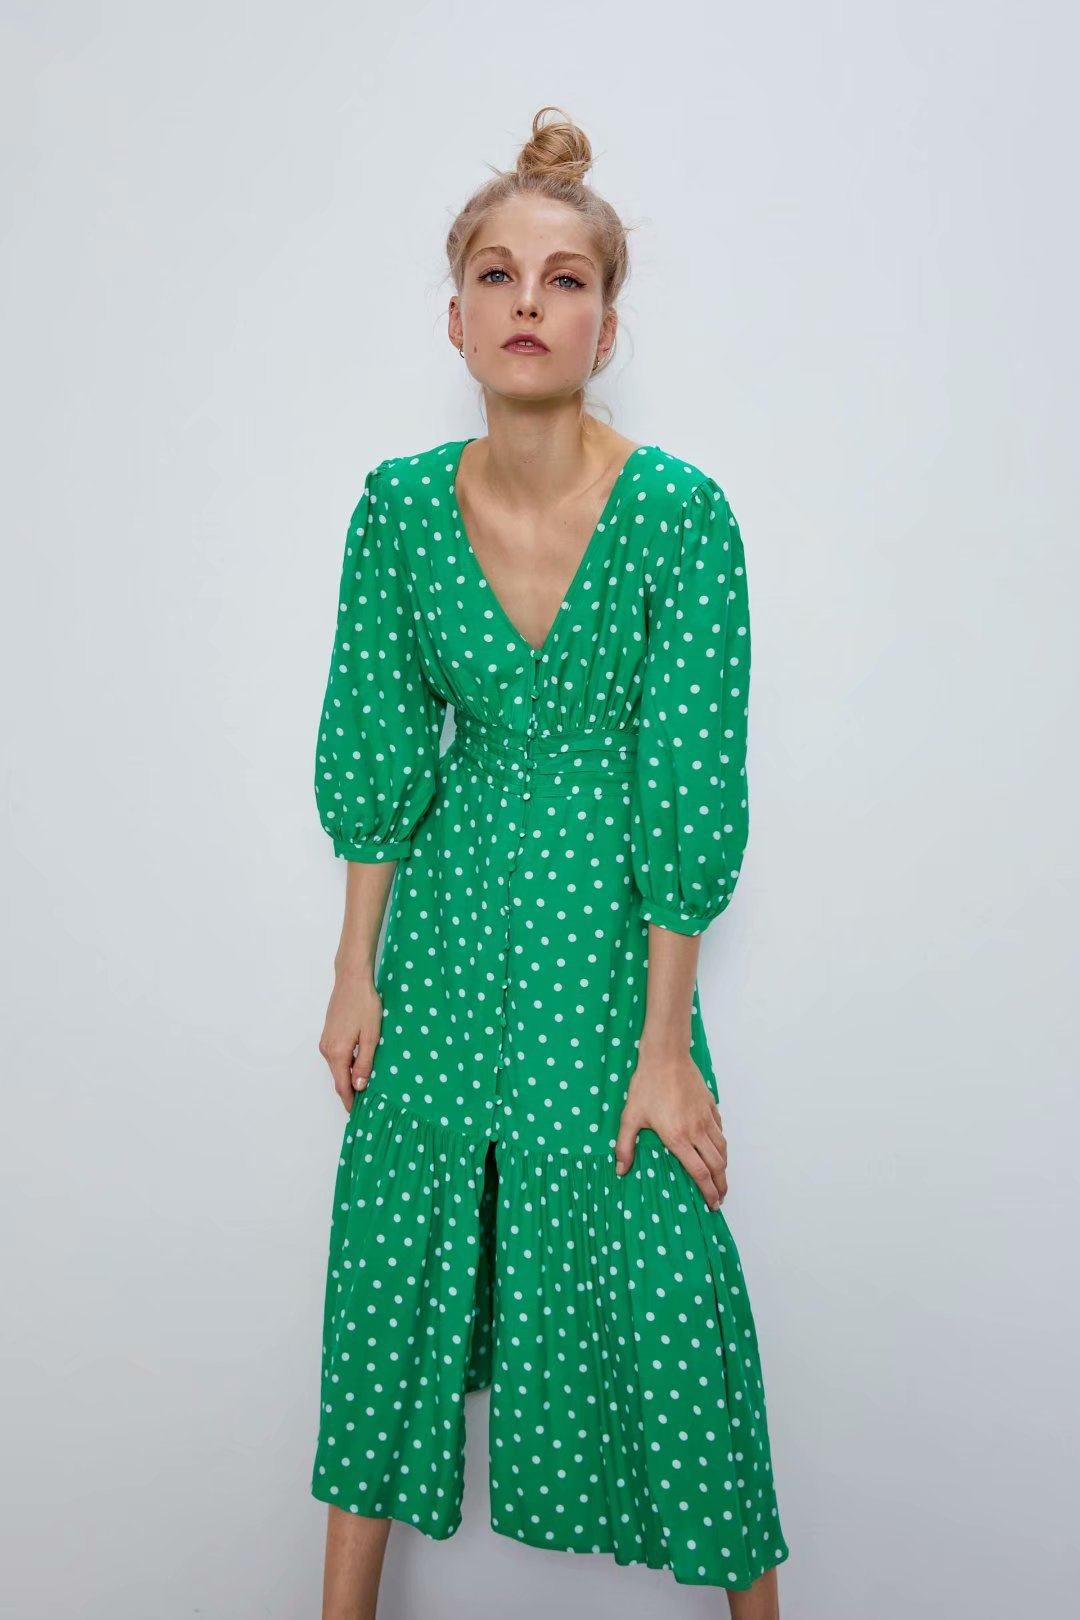 2020 New Spring Summer European Hair 55 Polka Dot Female Green Dress Zaraing Vadiming Sheining Women Dress Streetwear O9608